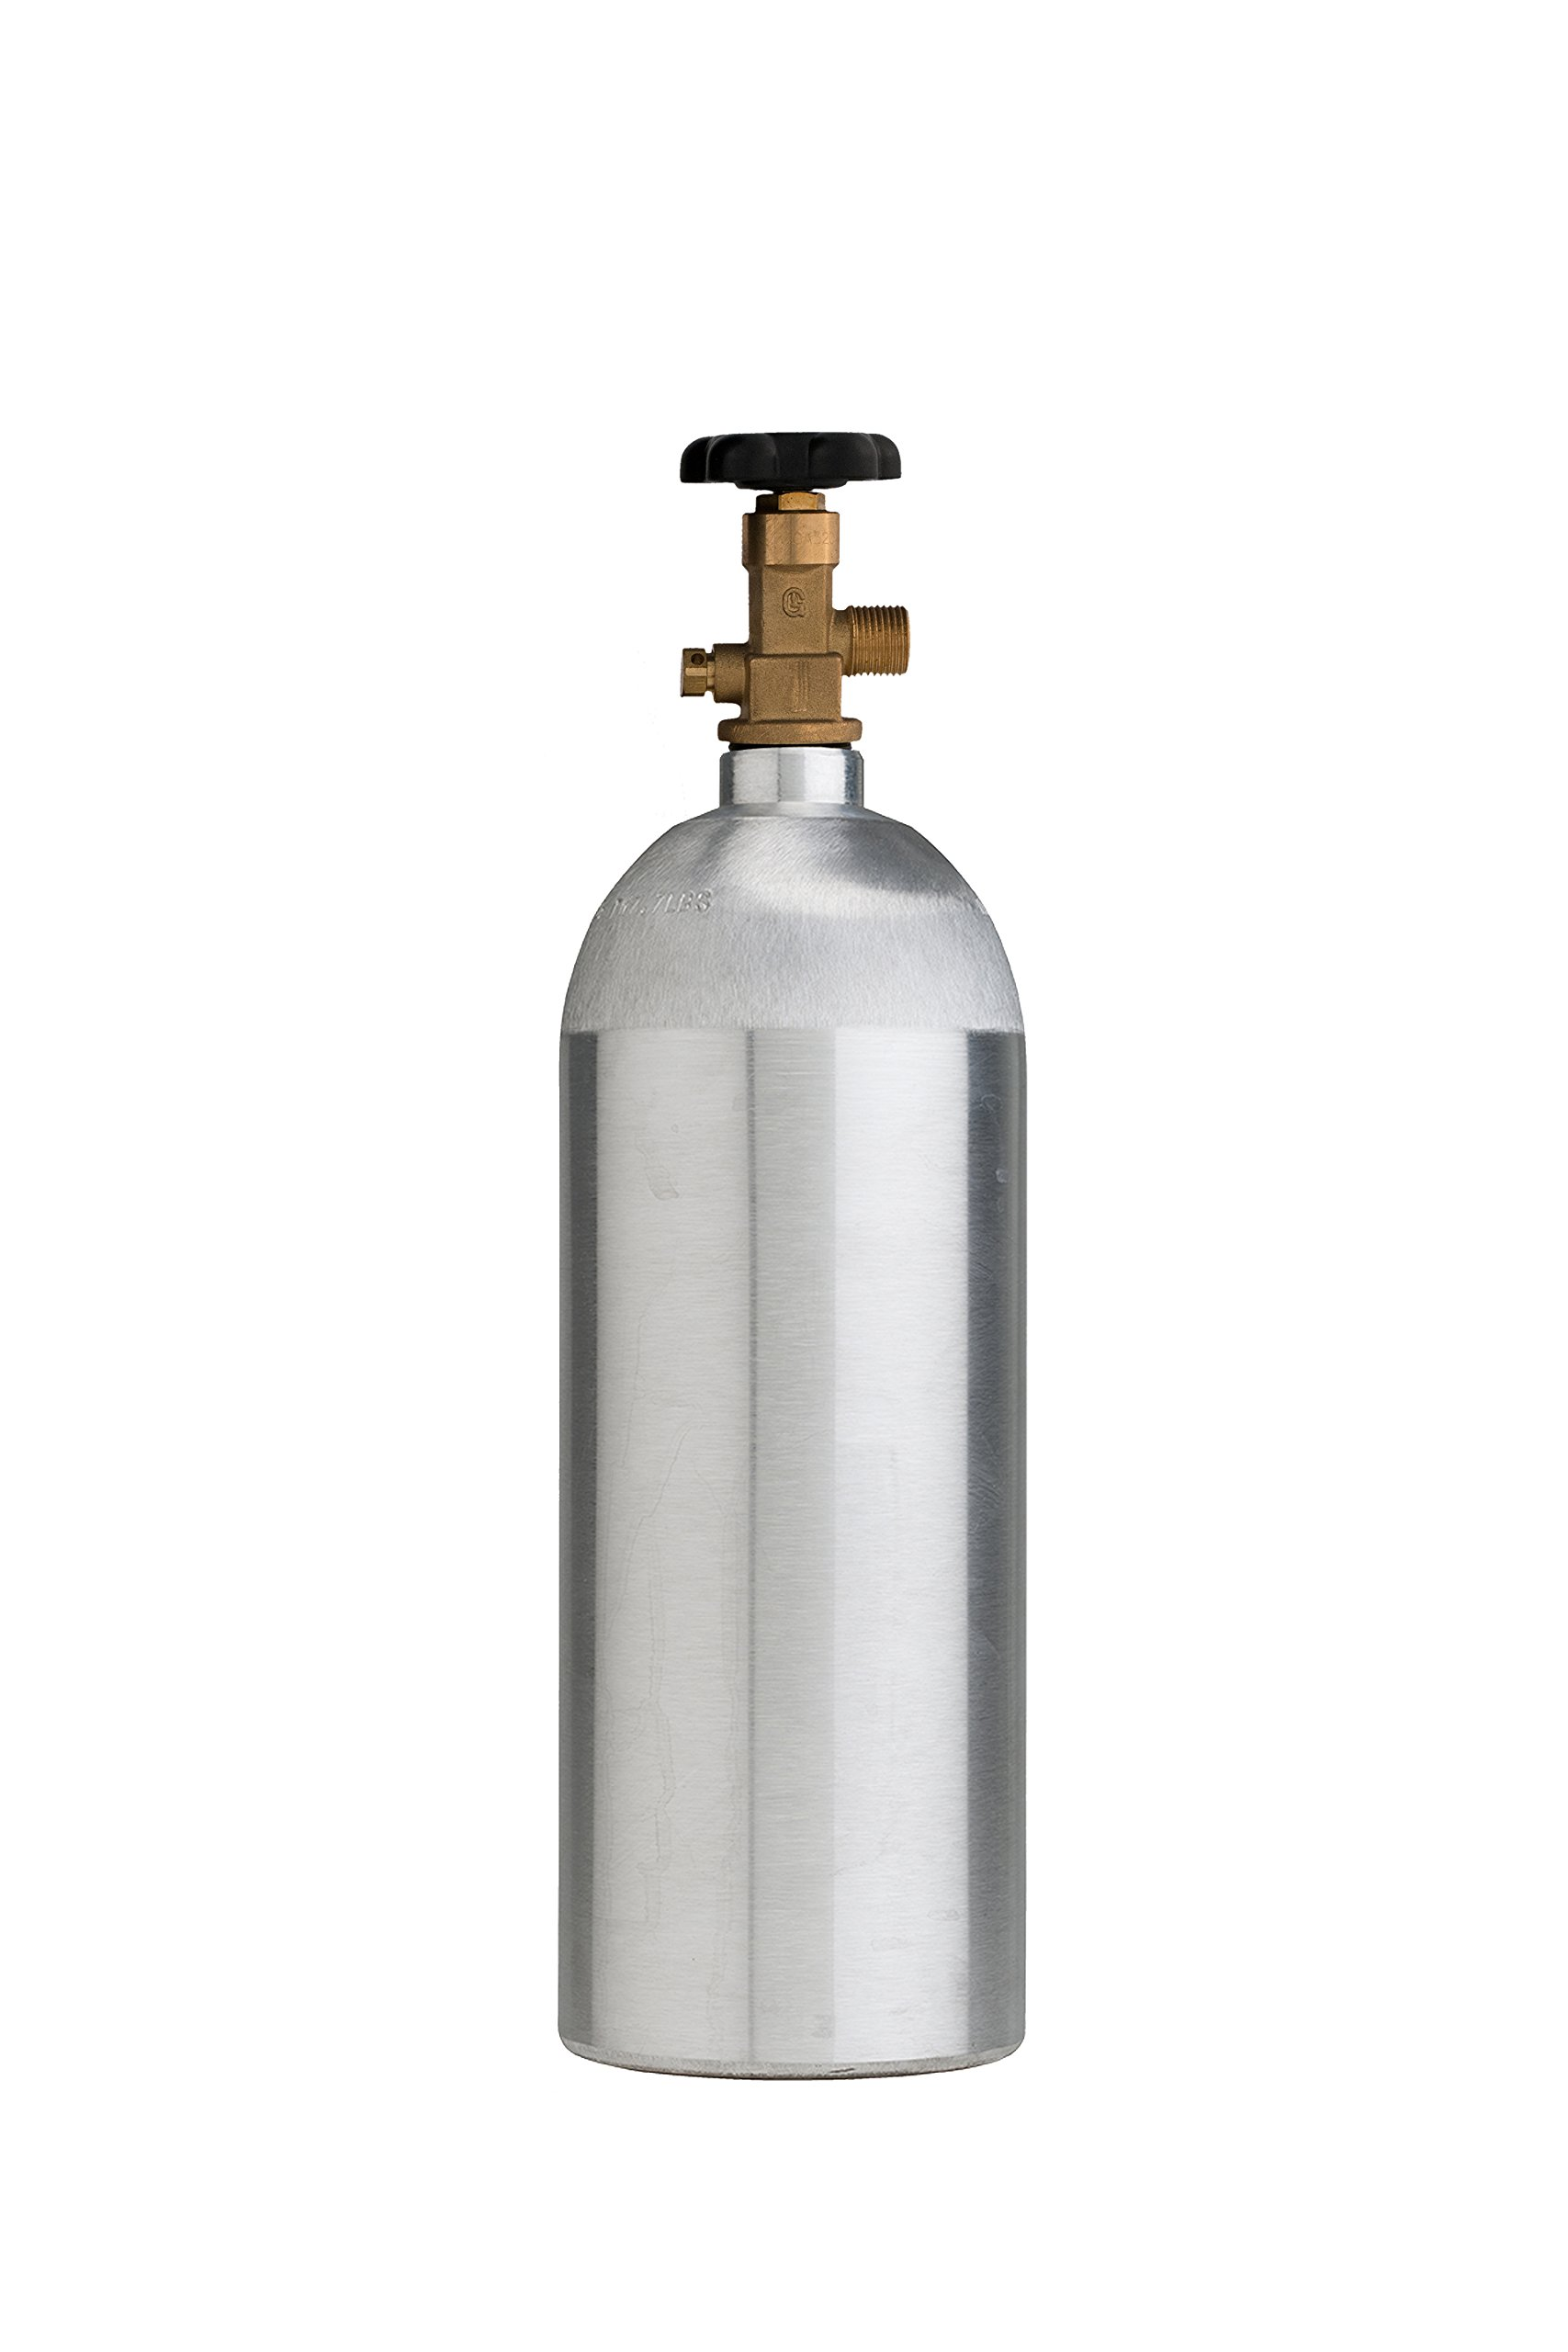 Cyl-Tec CO2 Aluminum Cylinder with CGA 320 Valve, 5 lb